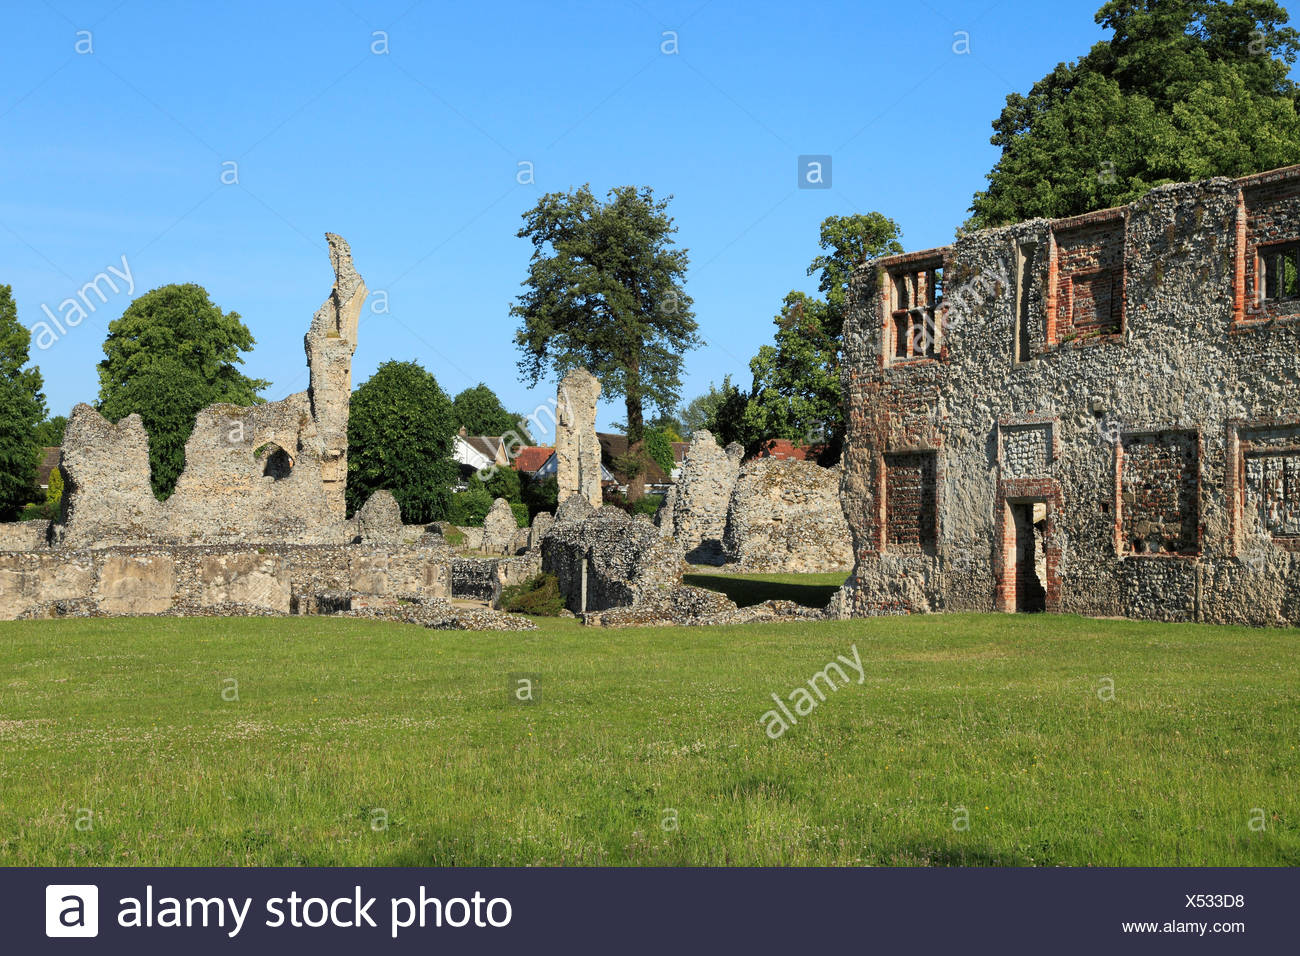 Thetford Priory, ruins of Cluniac Priory, Norfolk England UK English medieval Priories - Stock Image